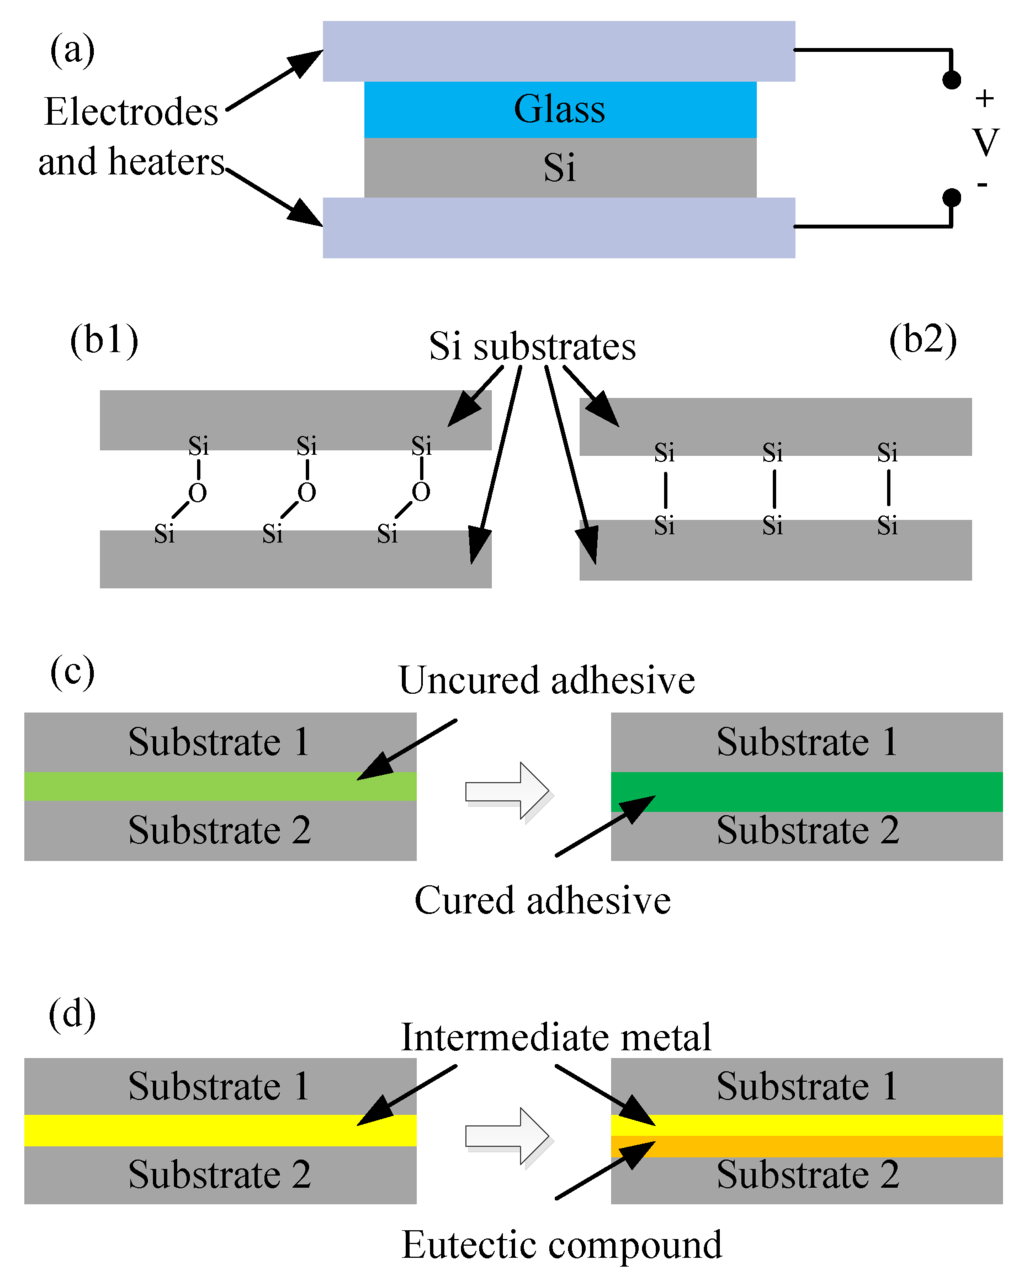 Photonics Special Issue Hybrid And Heterogeneous Technologies In History Of Integrated Circuit Quality Open Accessreview Transfer Printed Nanomembranes For Heterogeneously Membrane